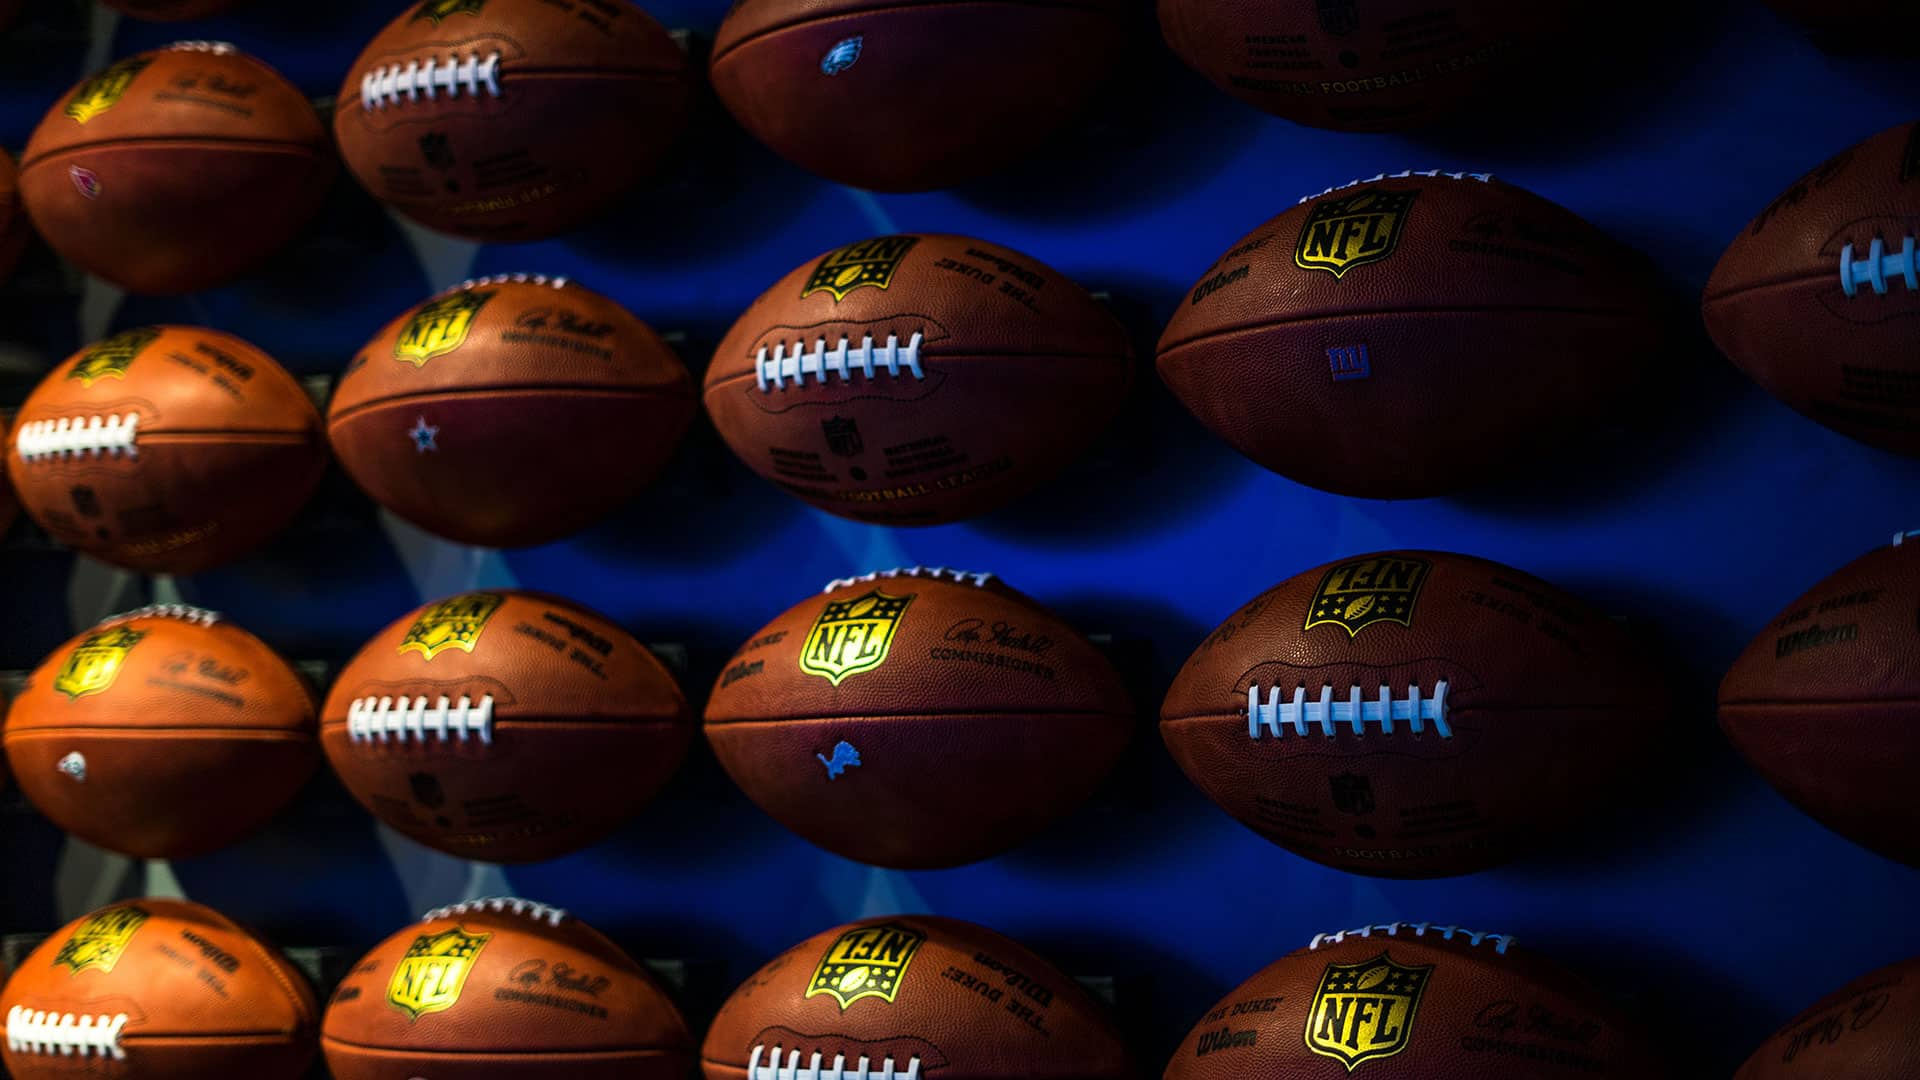 Footballs on a wall with a blue background